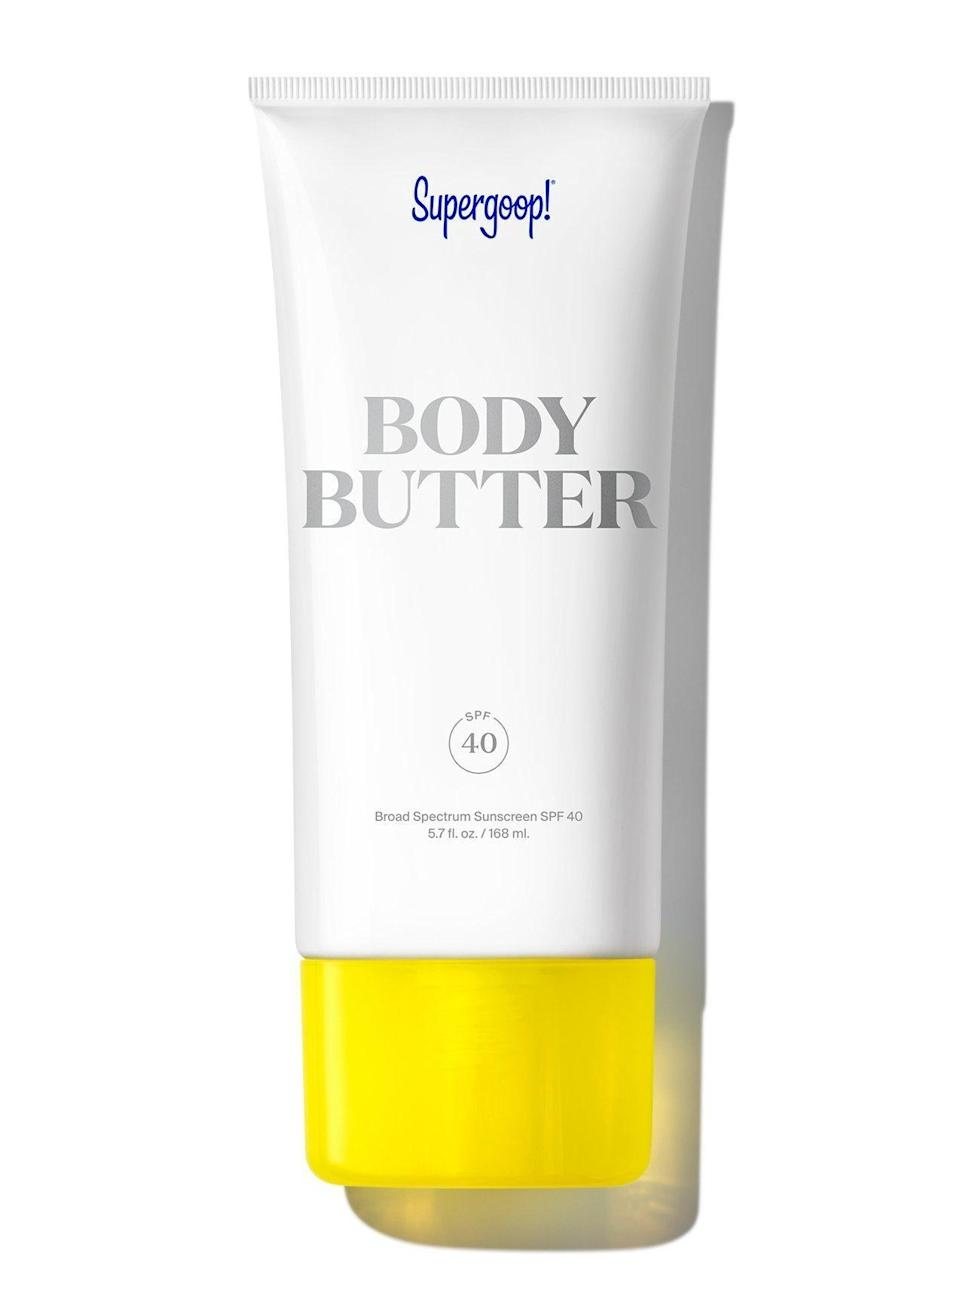 """<p><strong>Supergoop</strong></p><p>dermstore.com</p><p><strong>$38.00</strong></p><p><a href=""""https://go.redirectingat.com?id=74968X1596630&url=https%3A%2F%2Fwww.dermstore.com%2Fproduct_Body%2BButter%2BSPF%2B40_70494.htm&sref=https%3A%2F%2Fwww.oprahdaily.com%2Fbeauty%2Fskin-makeup%2Fg36545377%2Fbest-body-lotion-with-spf%2F"""" rel=""""nofollow noopener"""" target=""""_blank"""" data-ylk=""""slk:Shop Now"""" class=""""link rapid-noclick-resp"""">Shop Now</a></p><p>""""Some sunscreens have that tell-tale chemical smell, but this one has a very pleasant fragrance as a little extra bonus,"""" says Zalka. You can thank the eucalyptus, clove, and vanilla extracts for that. But what makes this formula extra nourishing is the addition of argan and meadowfoam seed oils, which lock in moisture. </p>"""